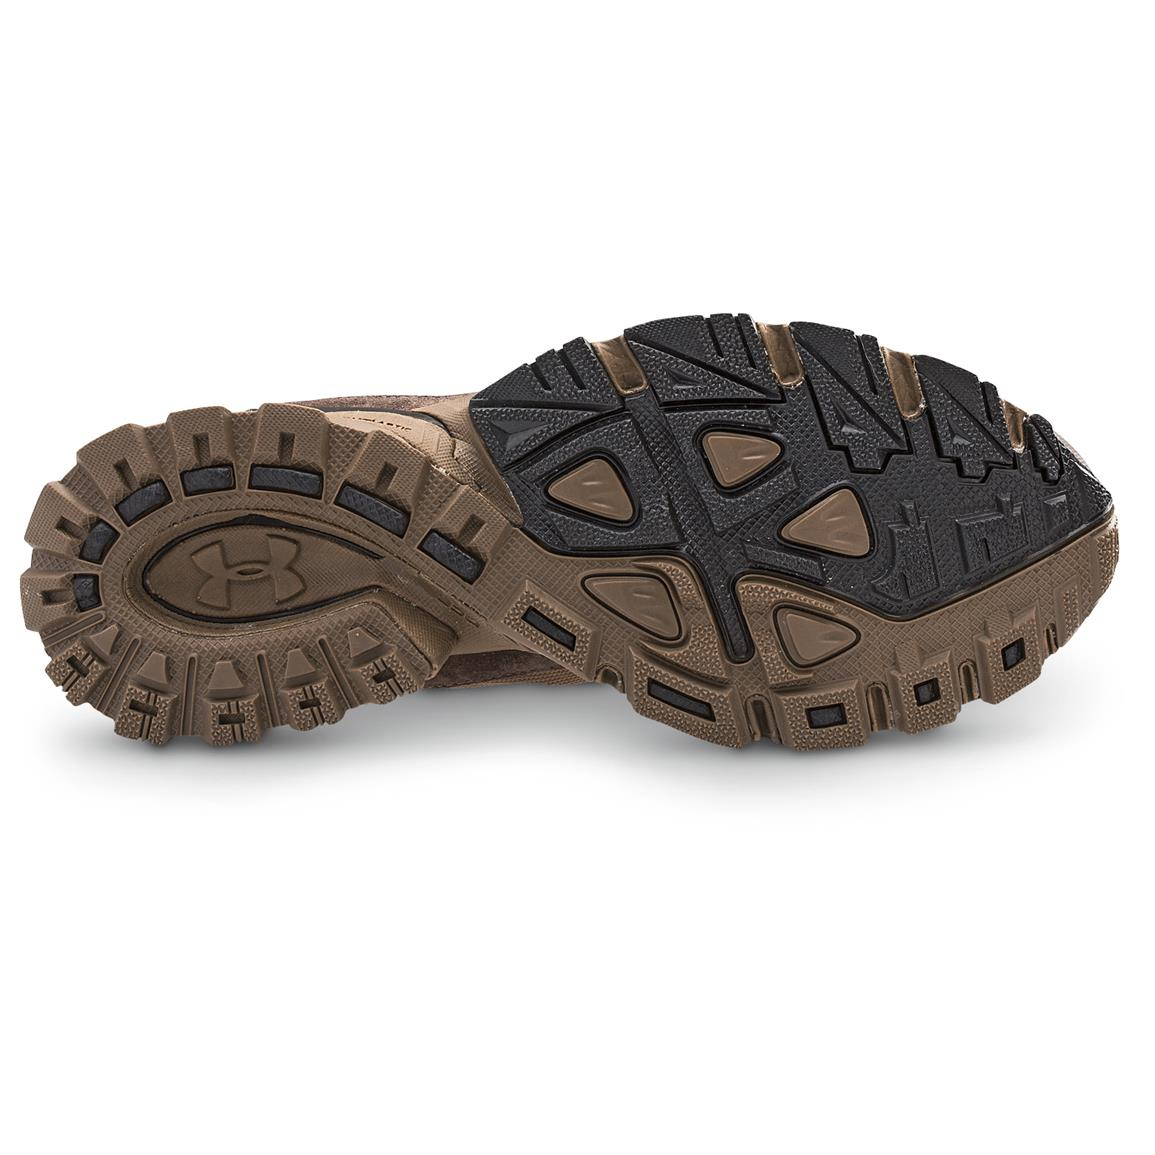 Aggressive high-abrasion rubber traction outsole is engineered to grip